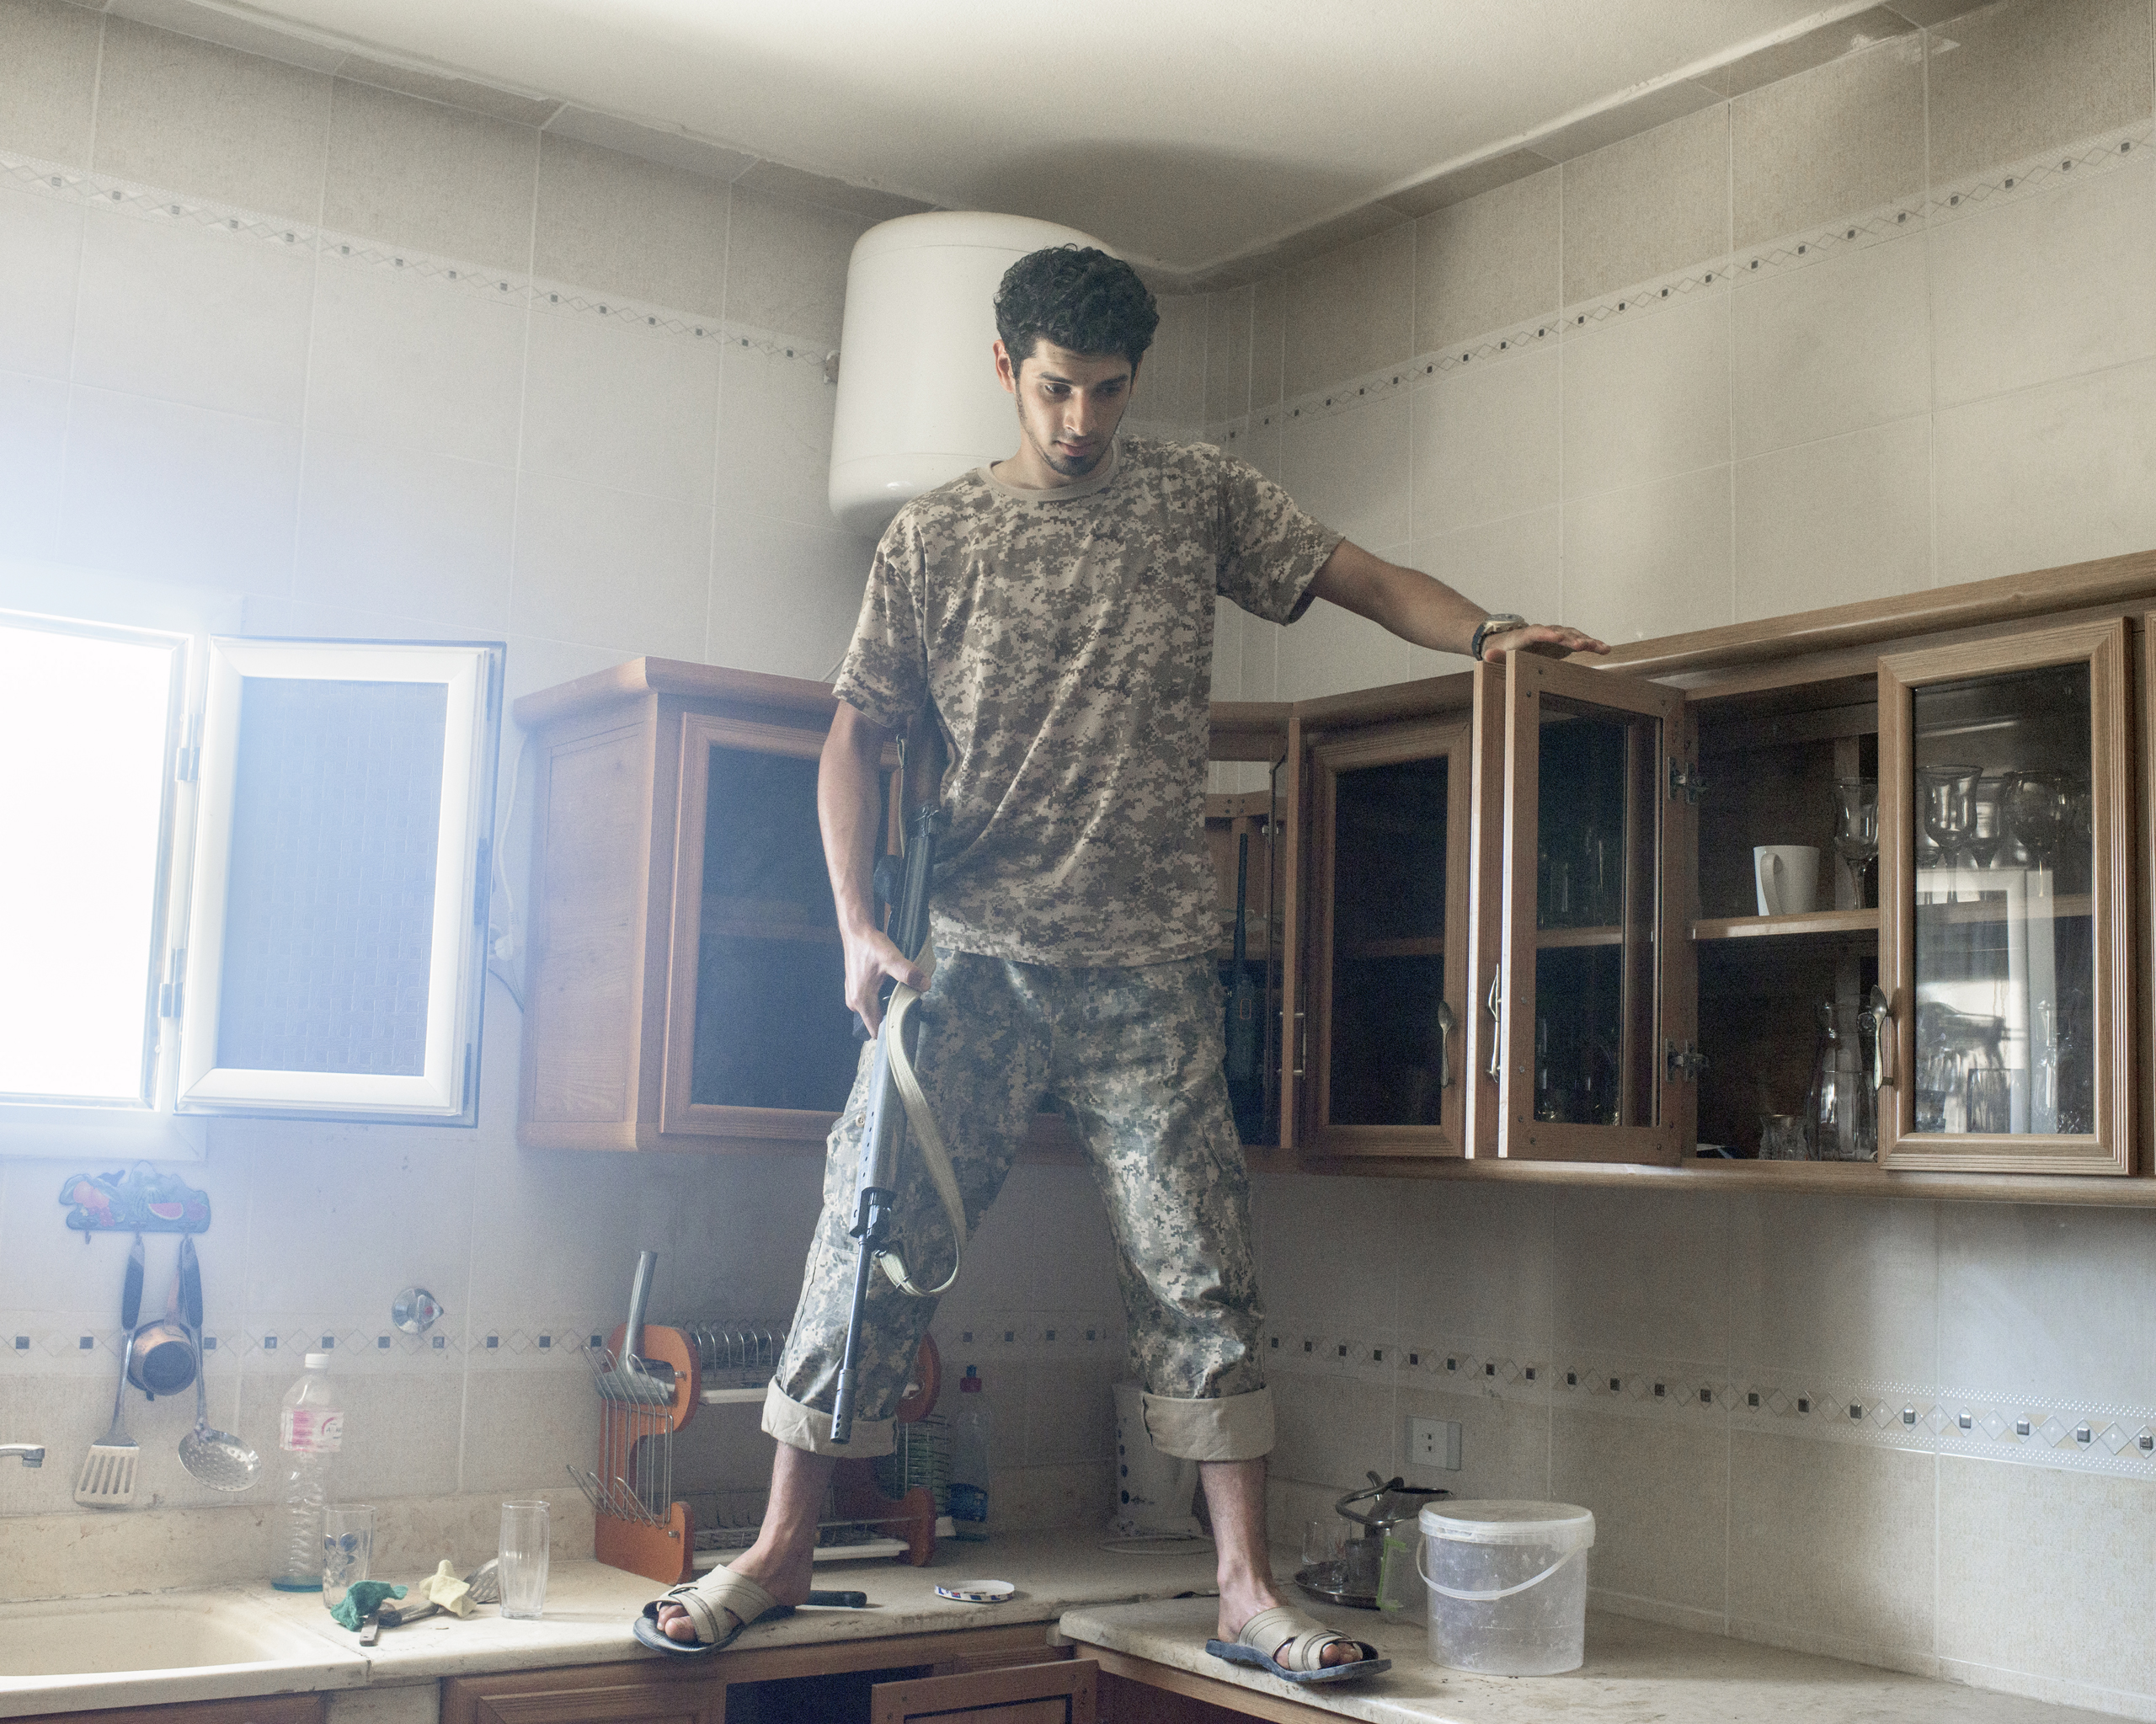 A Libyan fighter checks a kitchen for IEDs in a villa in a newly-liberated  district, Sirt, Libya, July 2016.